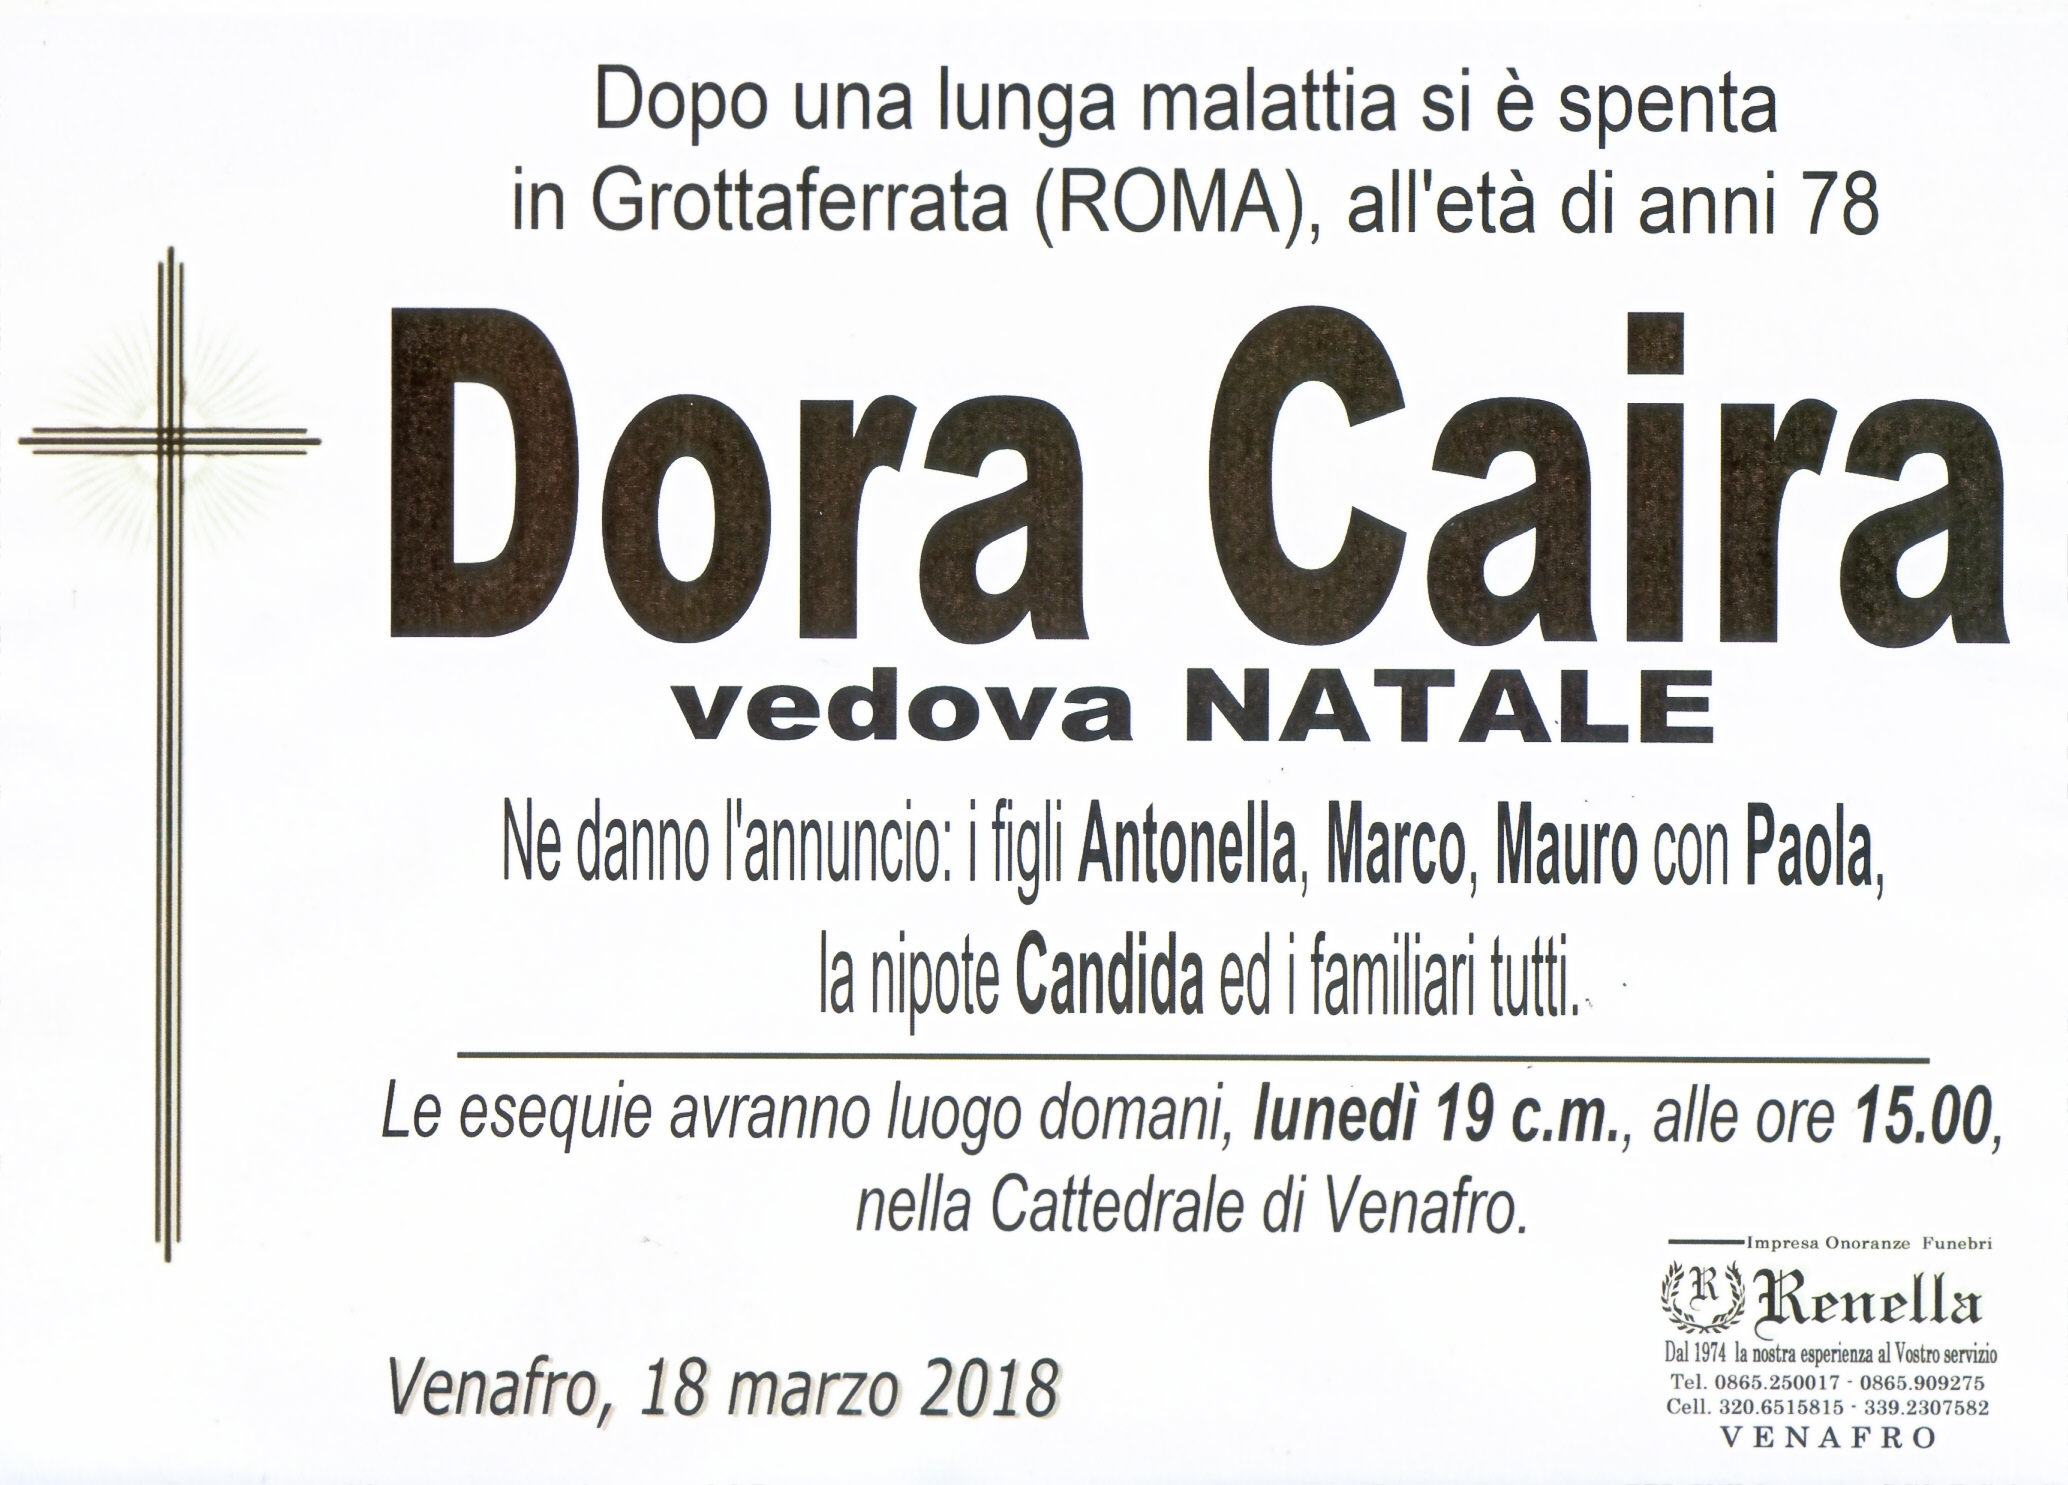 Dora Caira, 18/03/2018, Venafro (IS) – Onoranze Funebri Renella